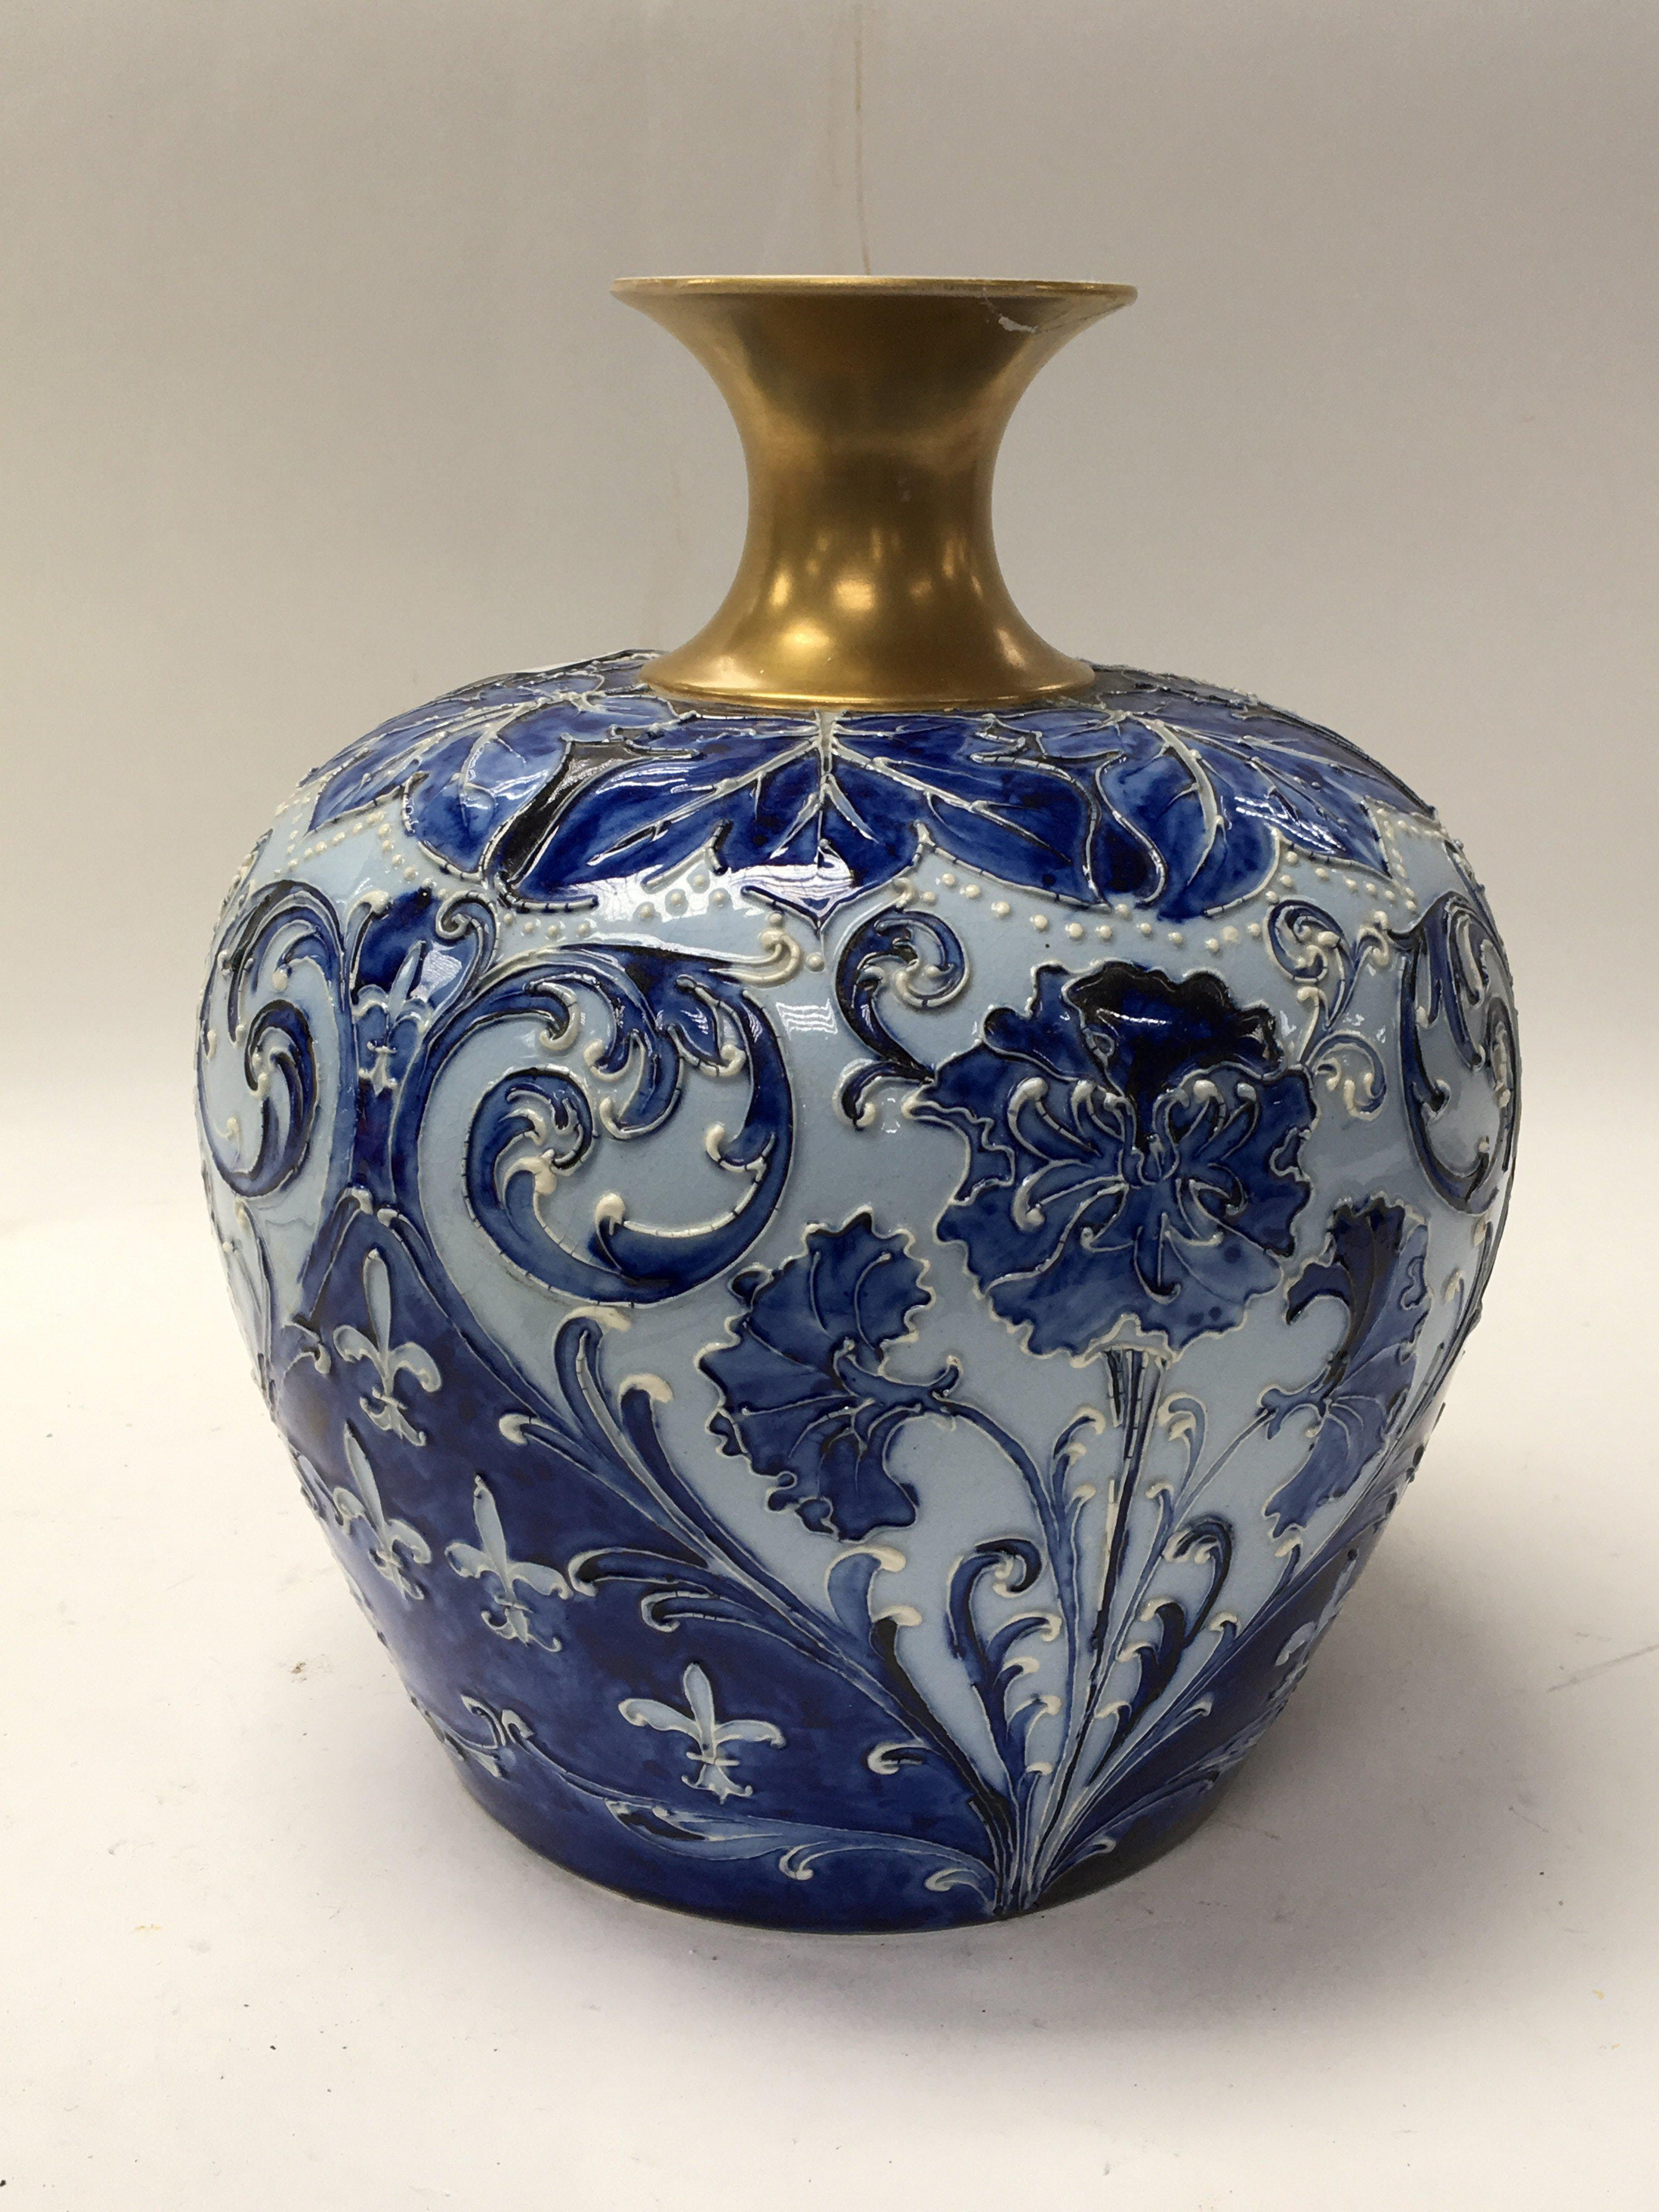 Lot 753 - An Early 20th century James Macintyre & co Gesso F